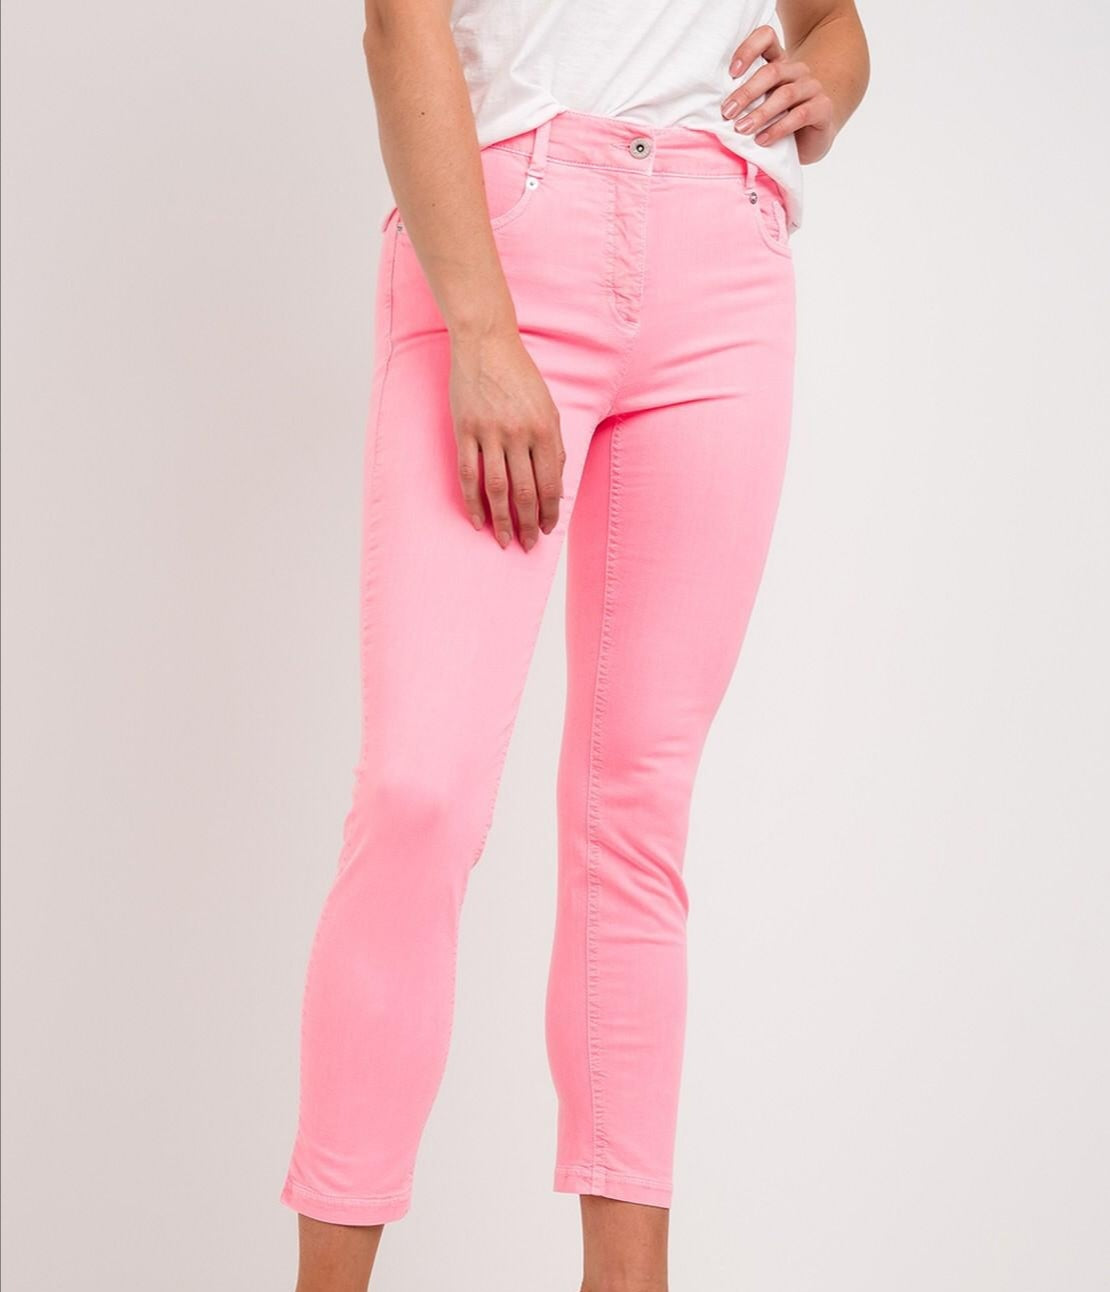 Robell 51584 Bubble Gum Pink 7/8th Jeans